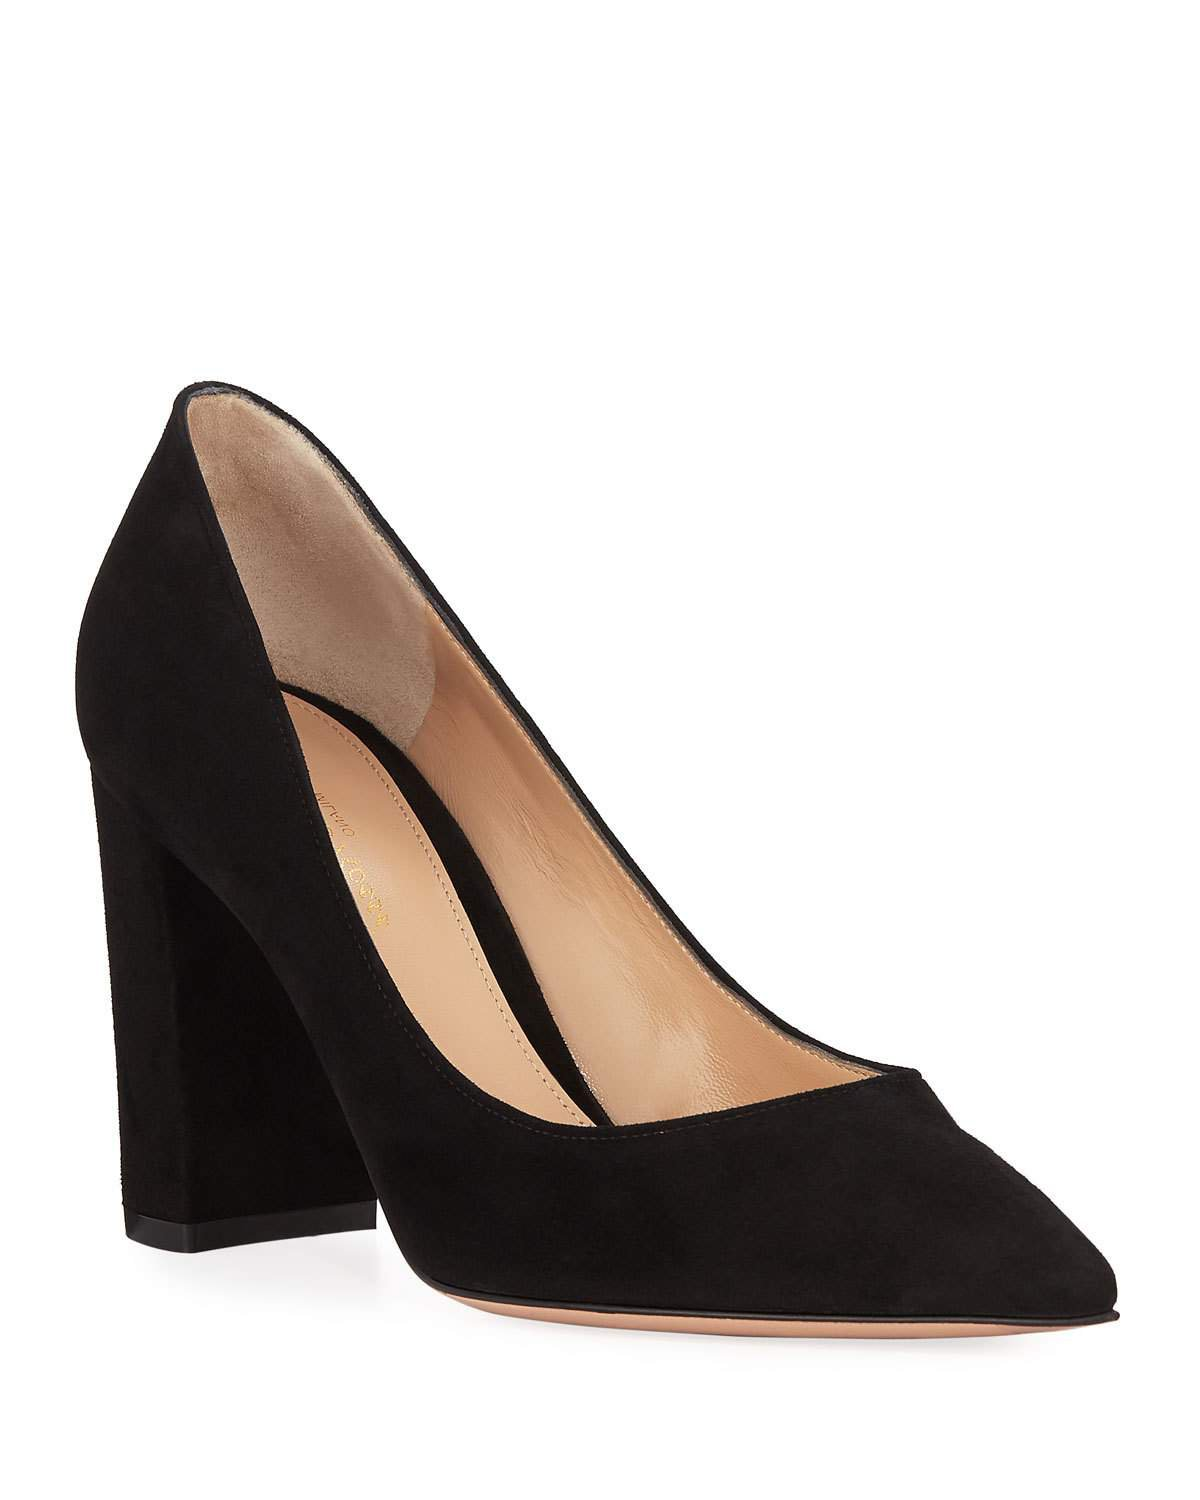 Gianvito Rossi Suede Pointed-Toe Pumps with Chunky Heel | Neiman Marcus